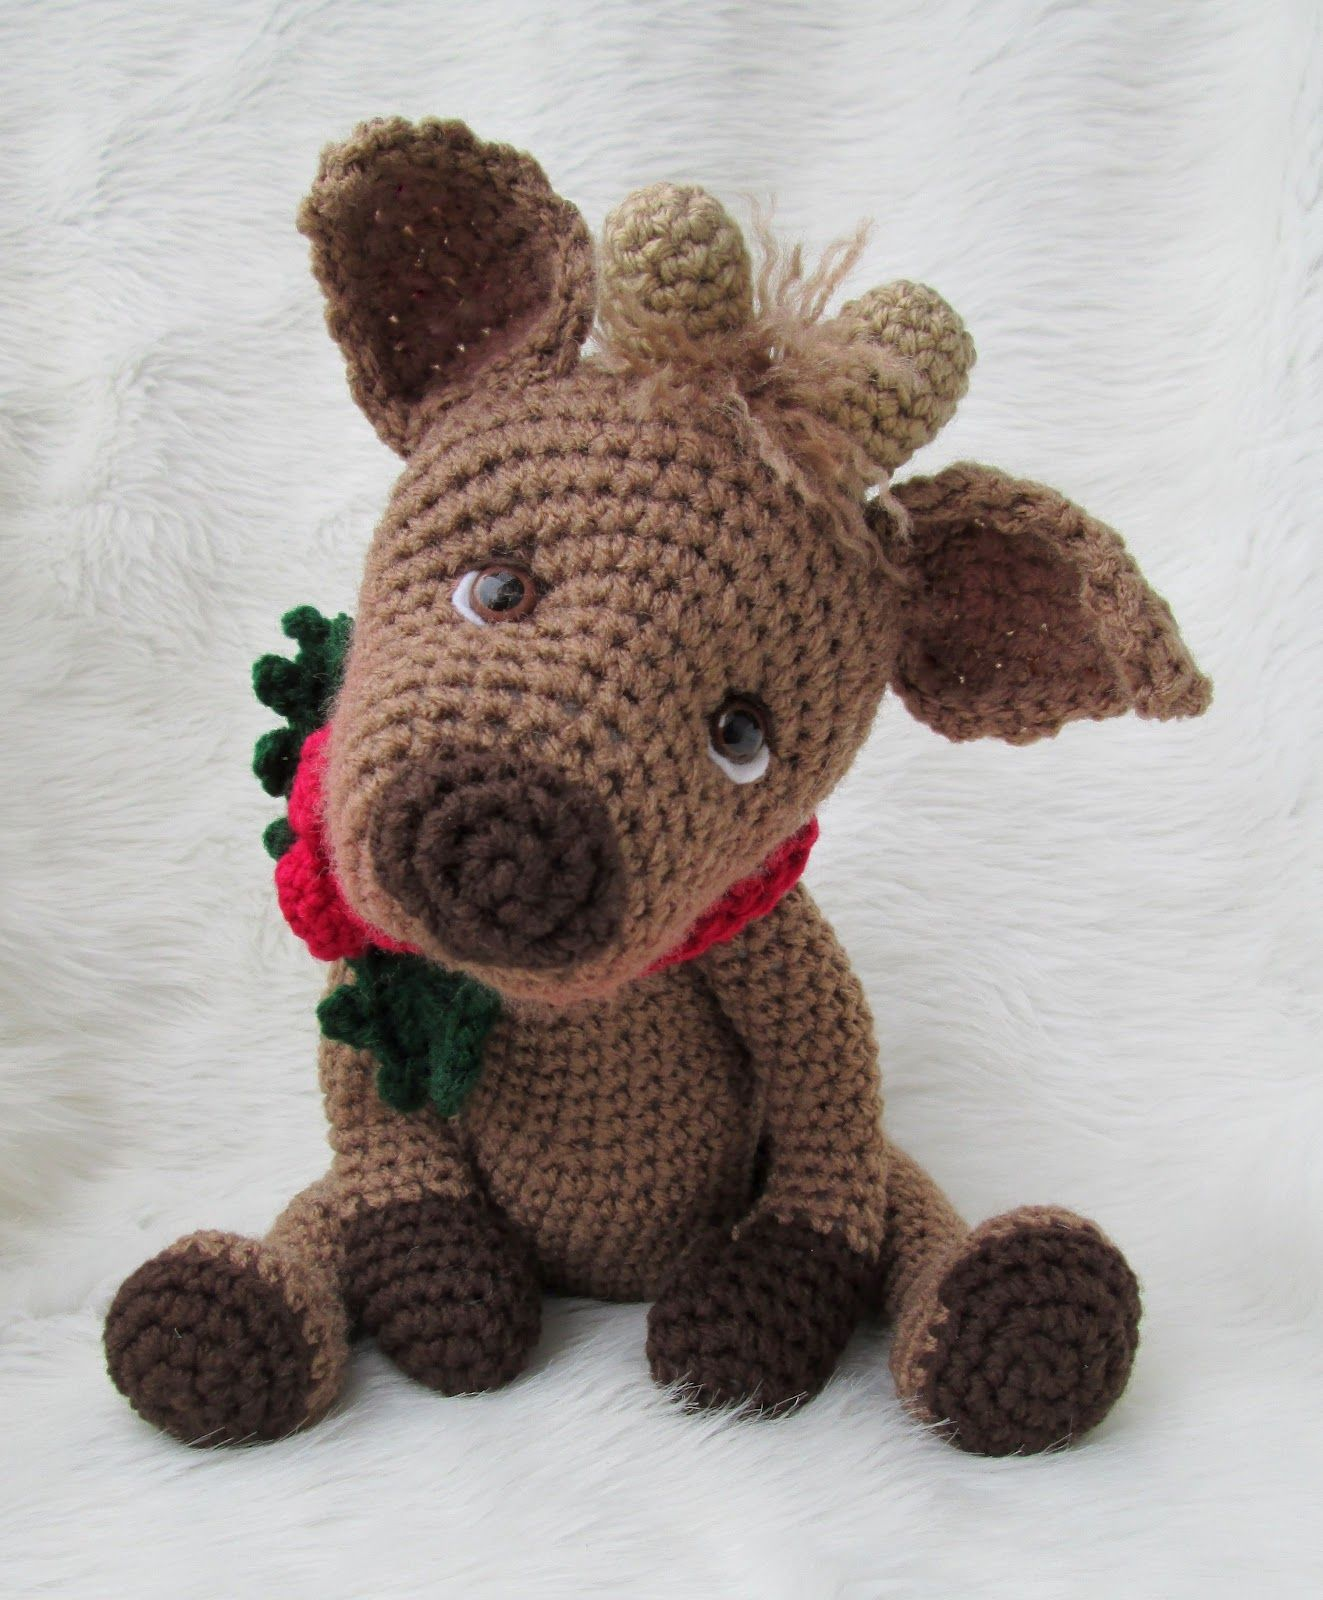 Free christmas crochet patterns all the best ideas free crochet free christmas crochet patterns all the best ideas bankloansurffo Image collections